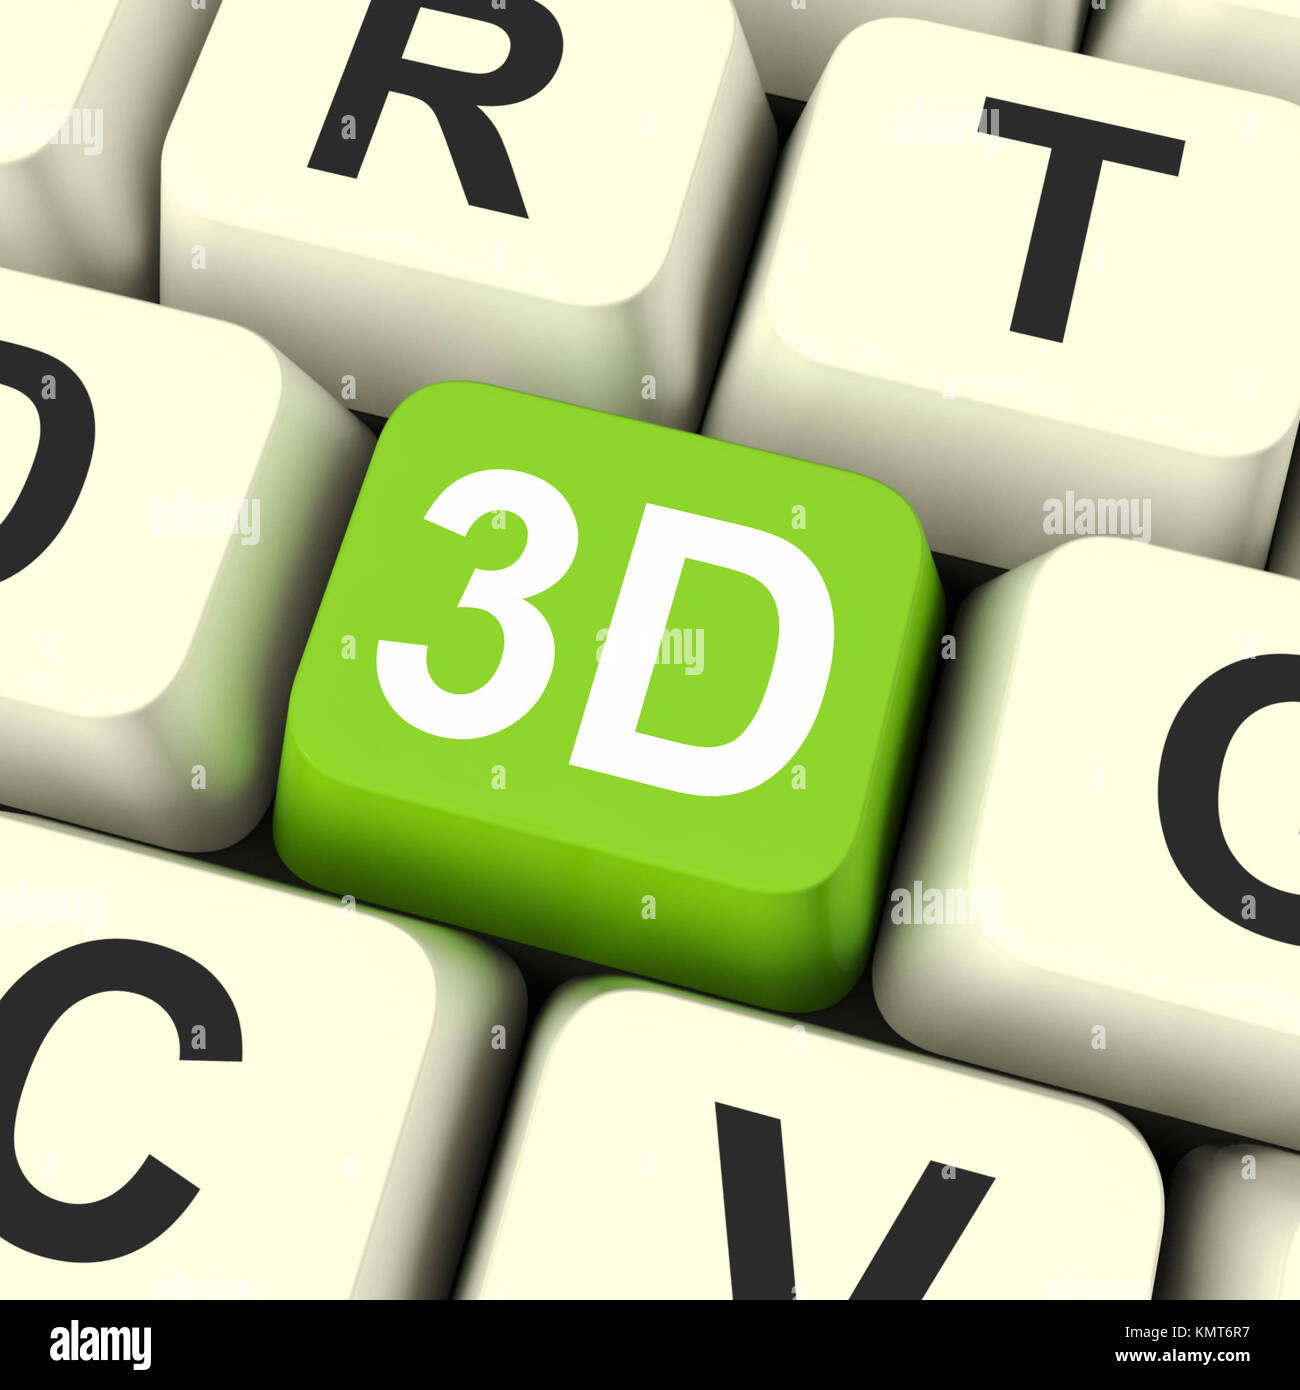 3d Key Showing Three Dimensional Printer Or Font - Stock Image